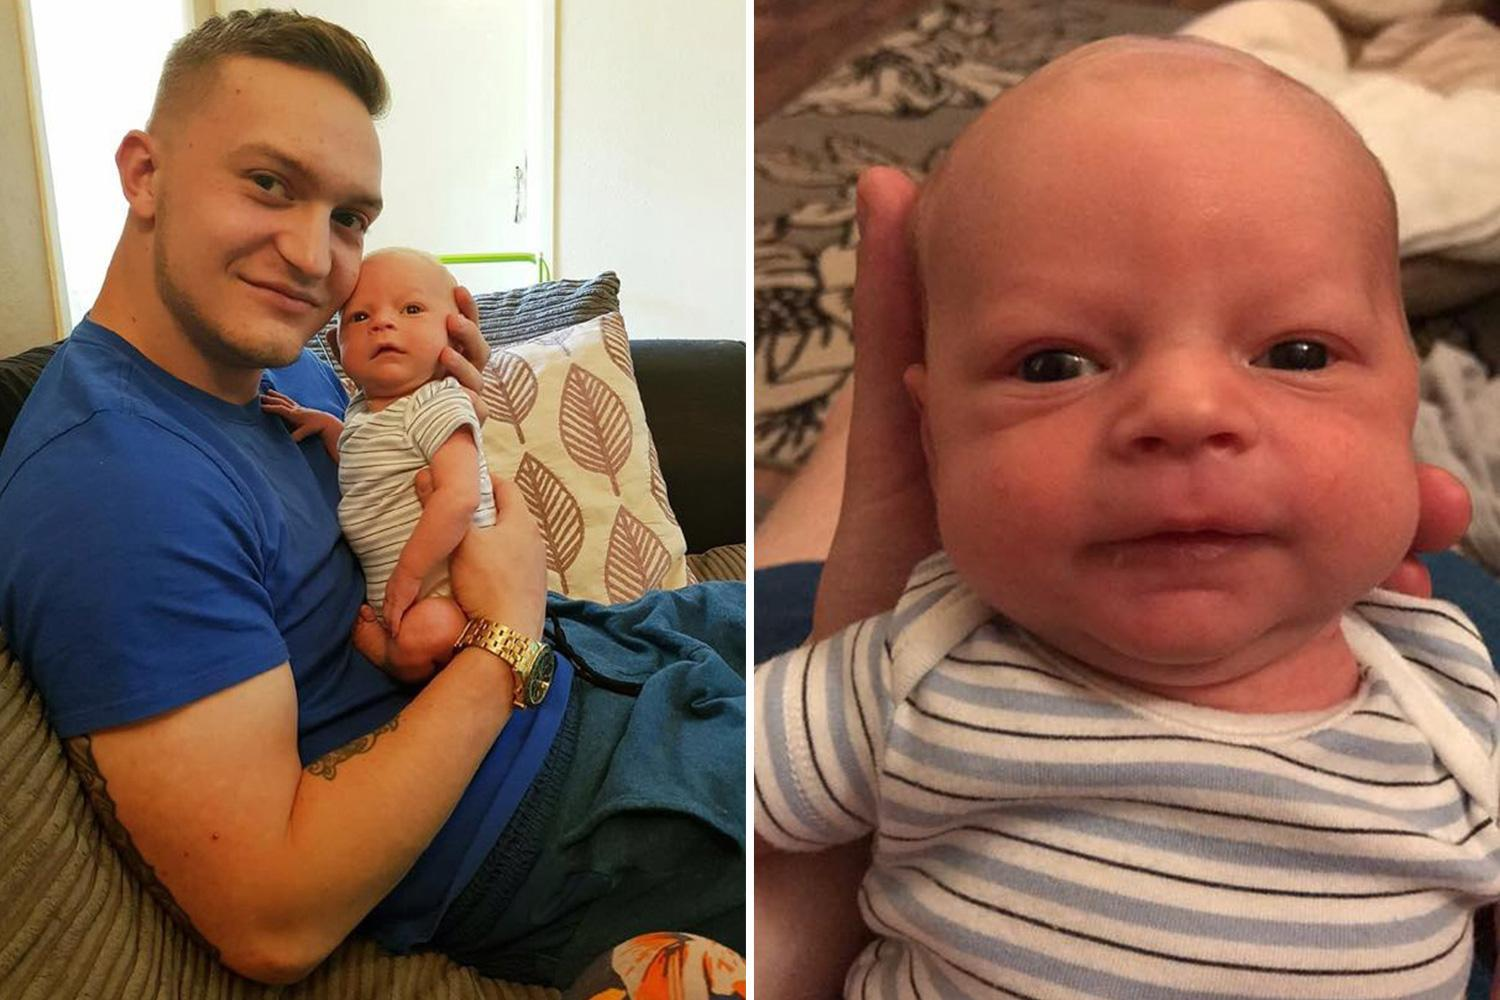 Heartbroken dad wakes to find baby son dead in his arms just two hours after they fell asleep on sofa